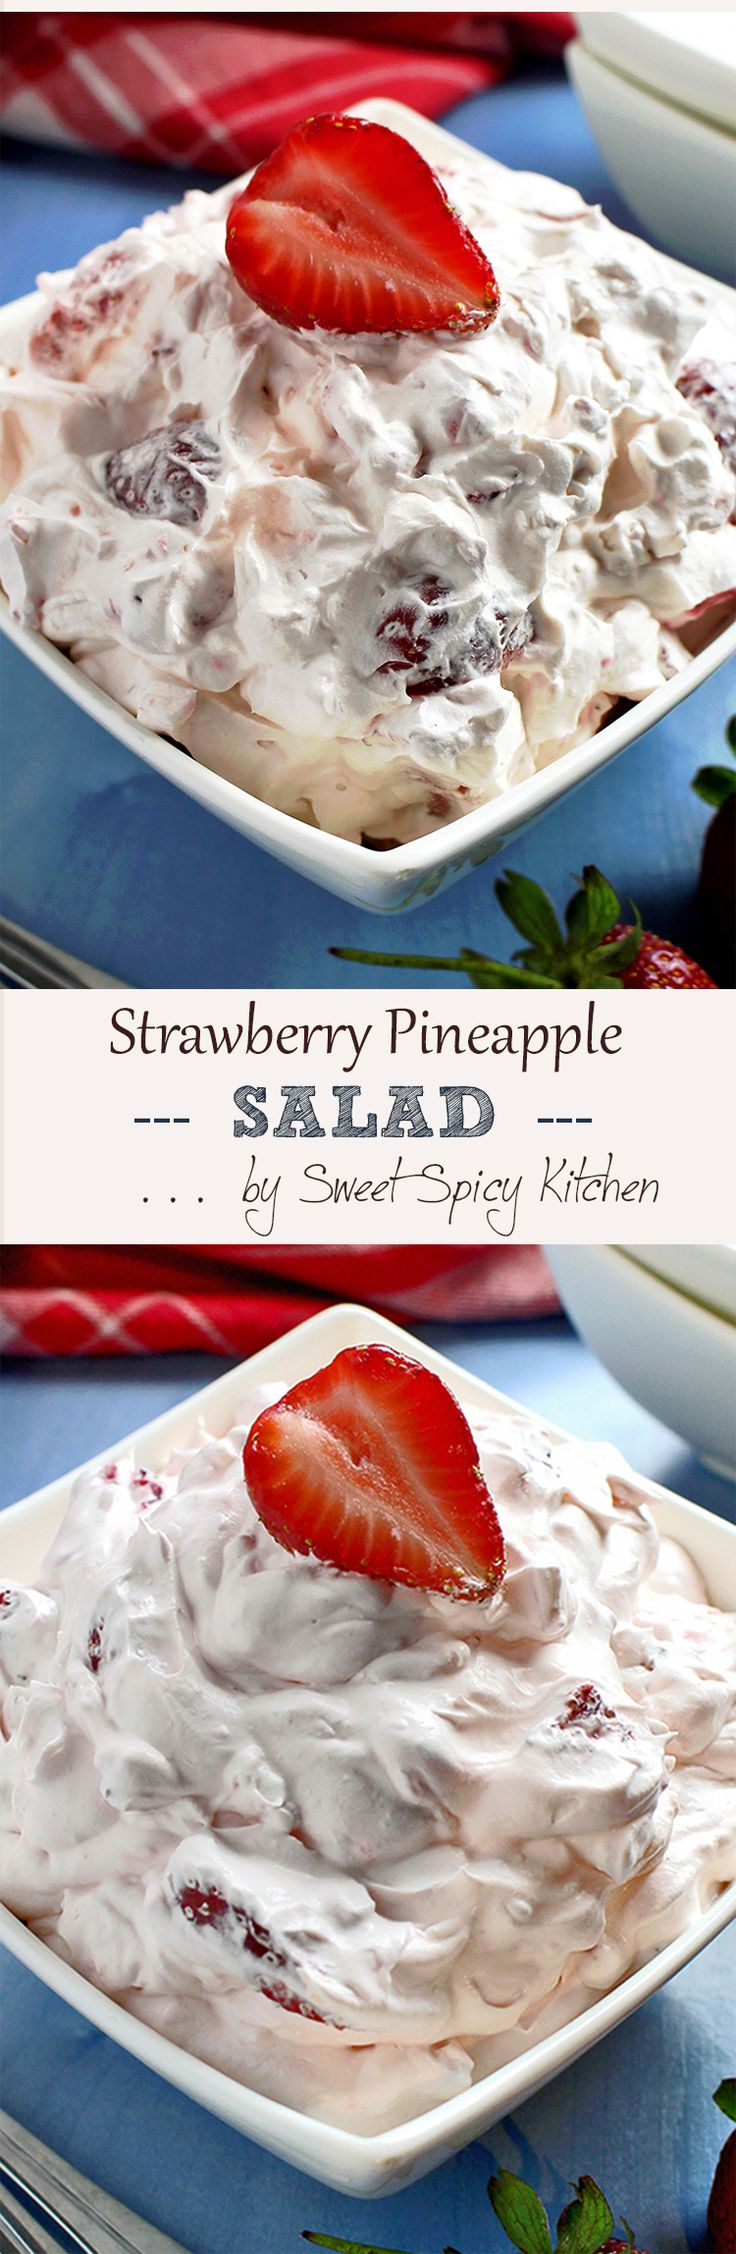 Quick and easy Strawberry Pineapple Fluff Salad recipe is perfect for any special occasions or holidays..Read More »